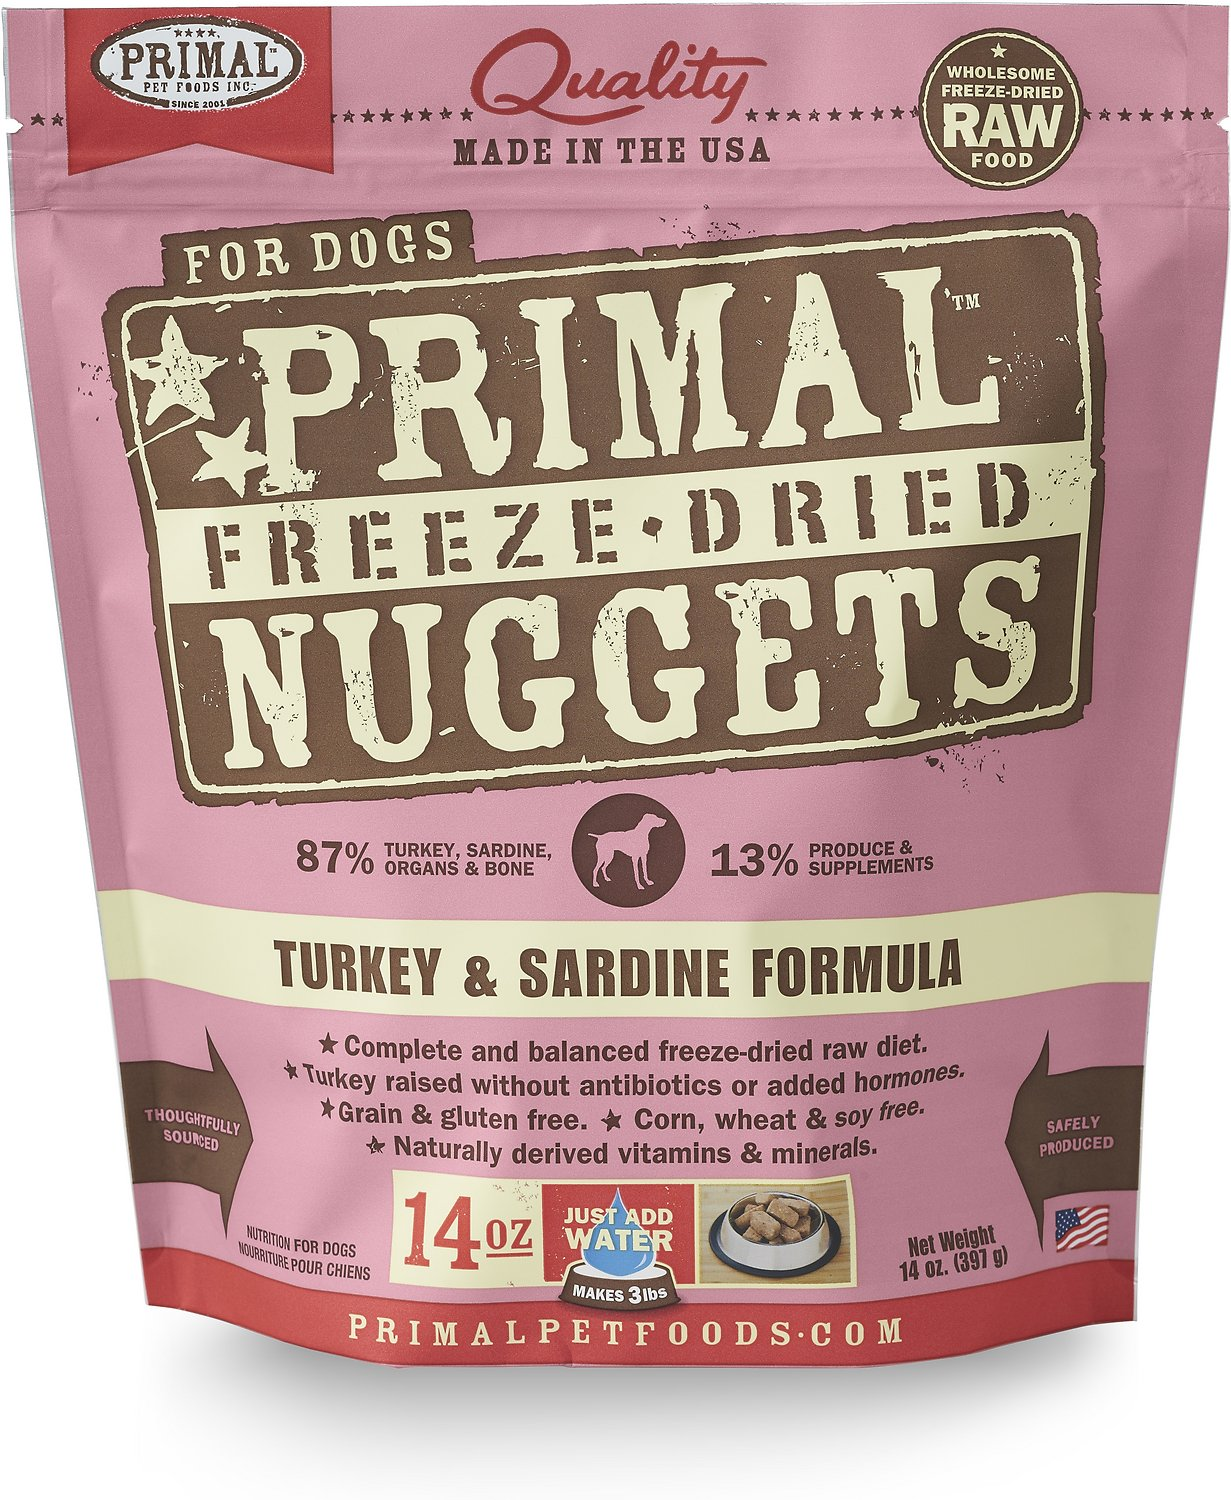 Primal Turkey & Sardine Formula Nuggets Grain-Free Raw Freeze-Dried Dog Food Image